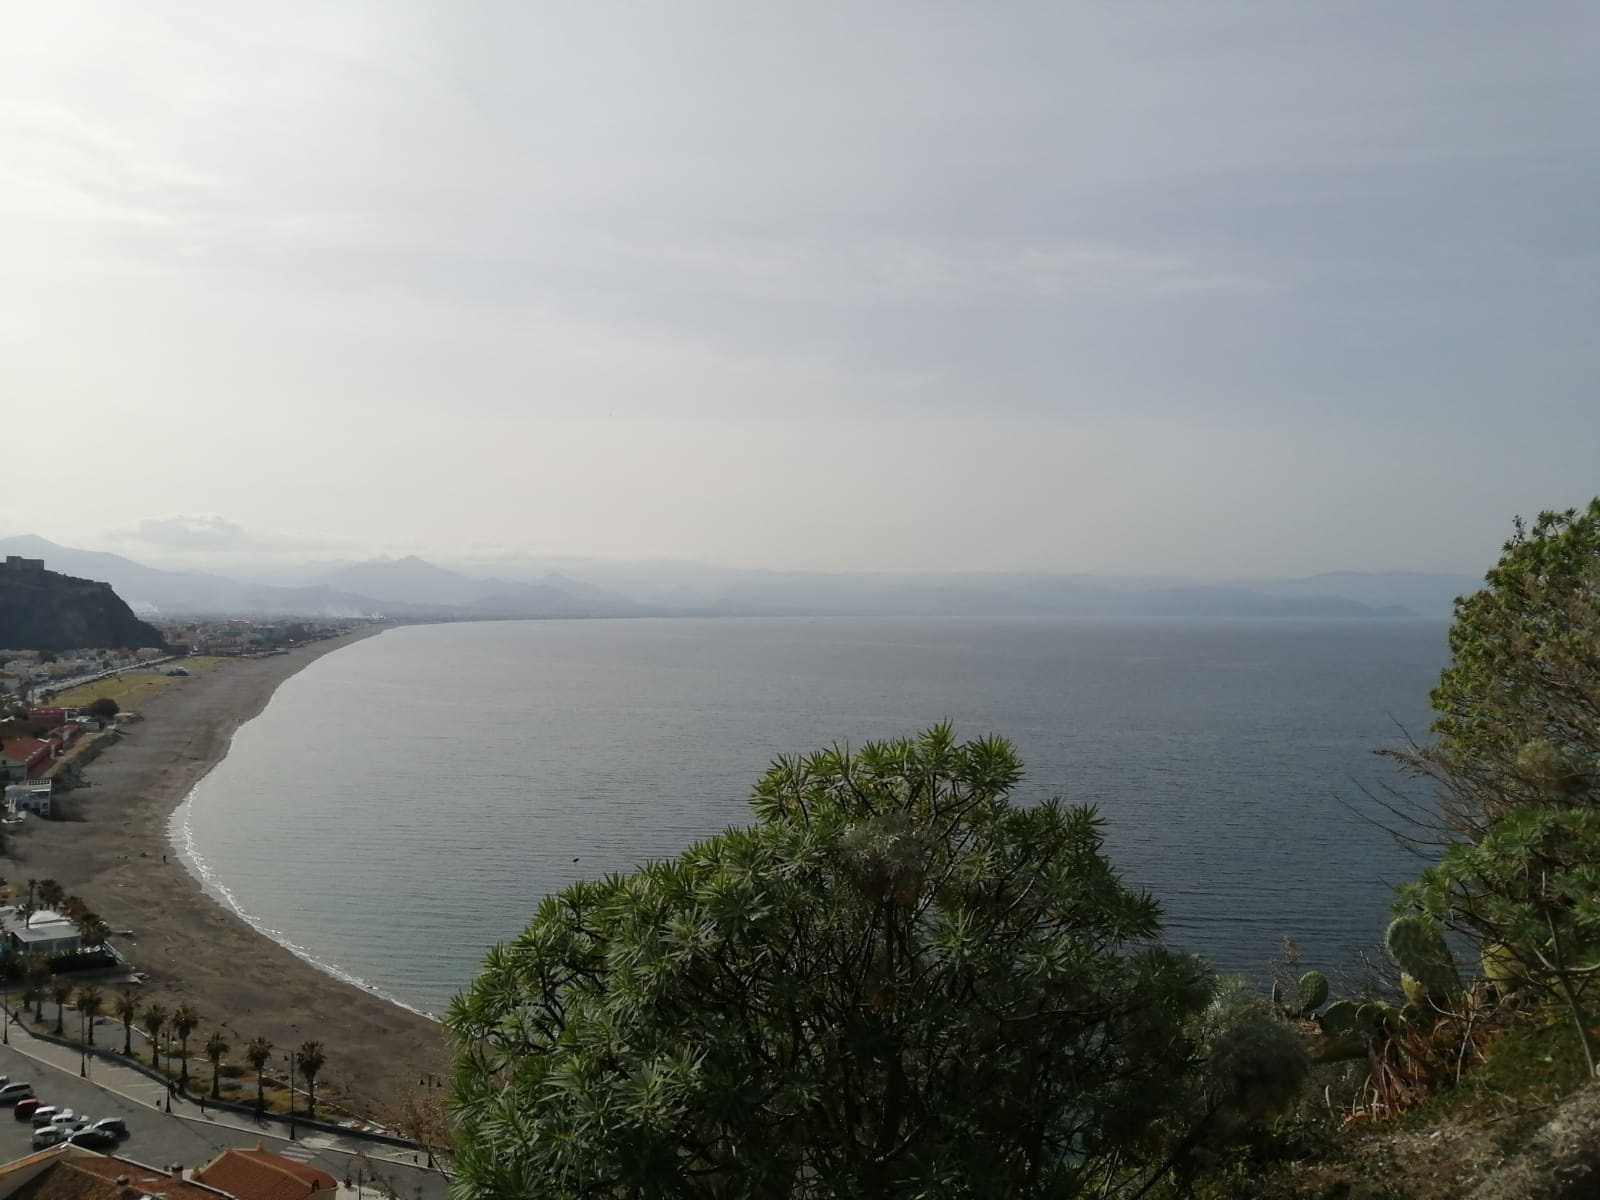 La Manica, Milazzo, Sicily, Ph Beatrice D'Angelo all rights reserved